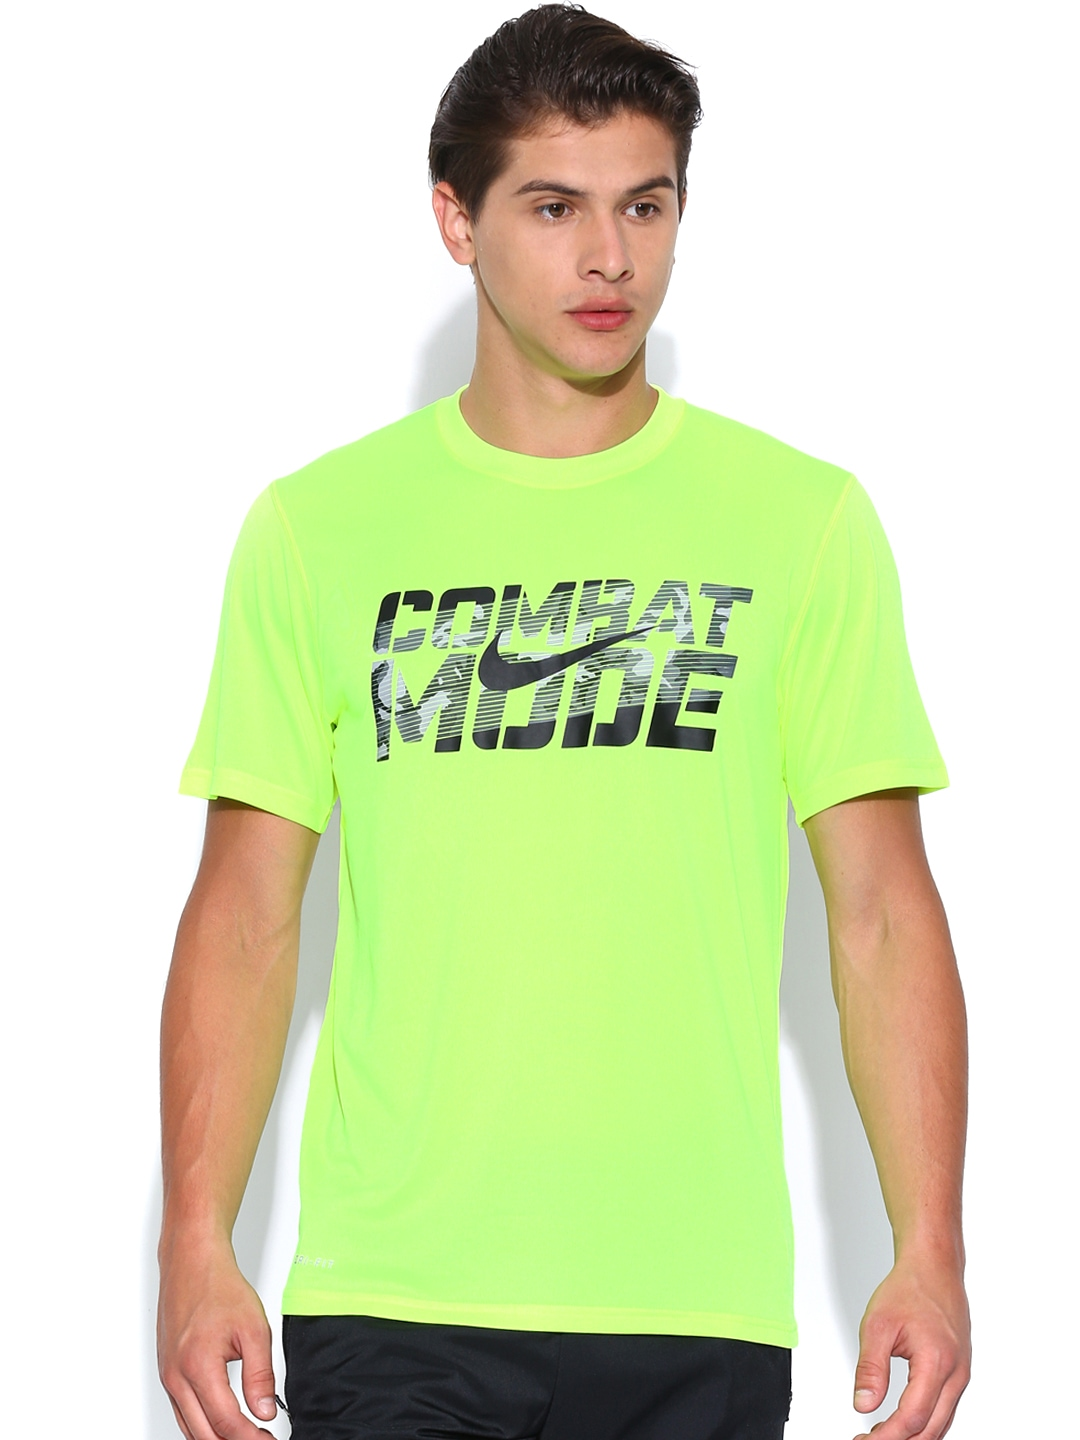 Cheap Buy Shirt nike Online T Neon OwdwHqz